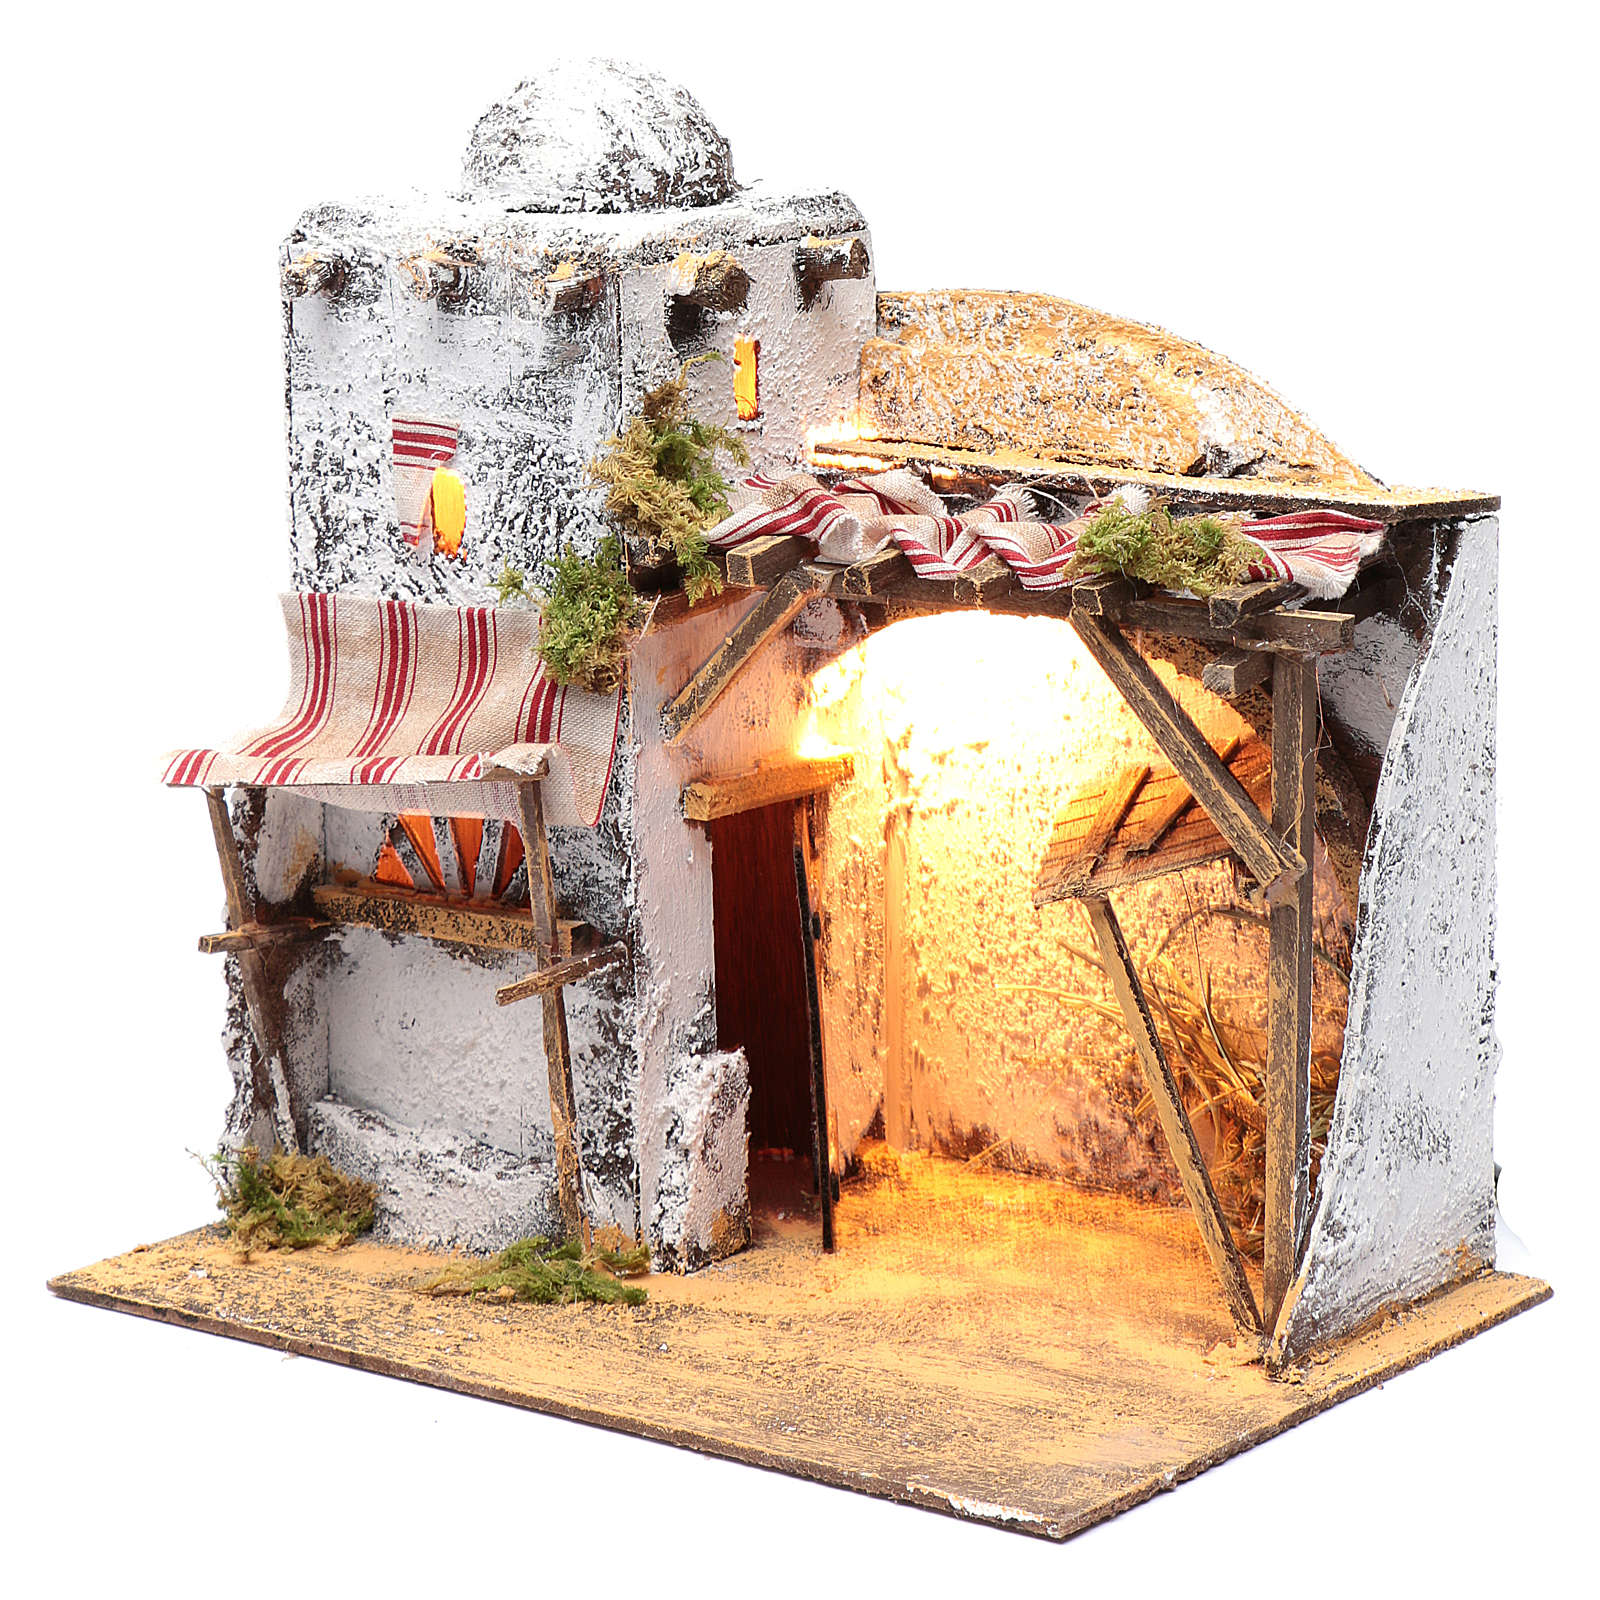 Neapolitan nativity scene Arabian setting 30x30x20 cm with curtain and trough 4